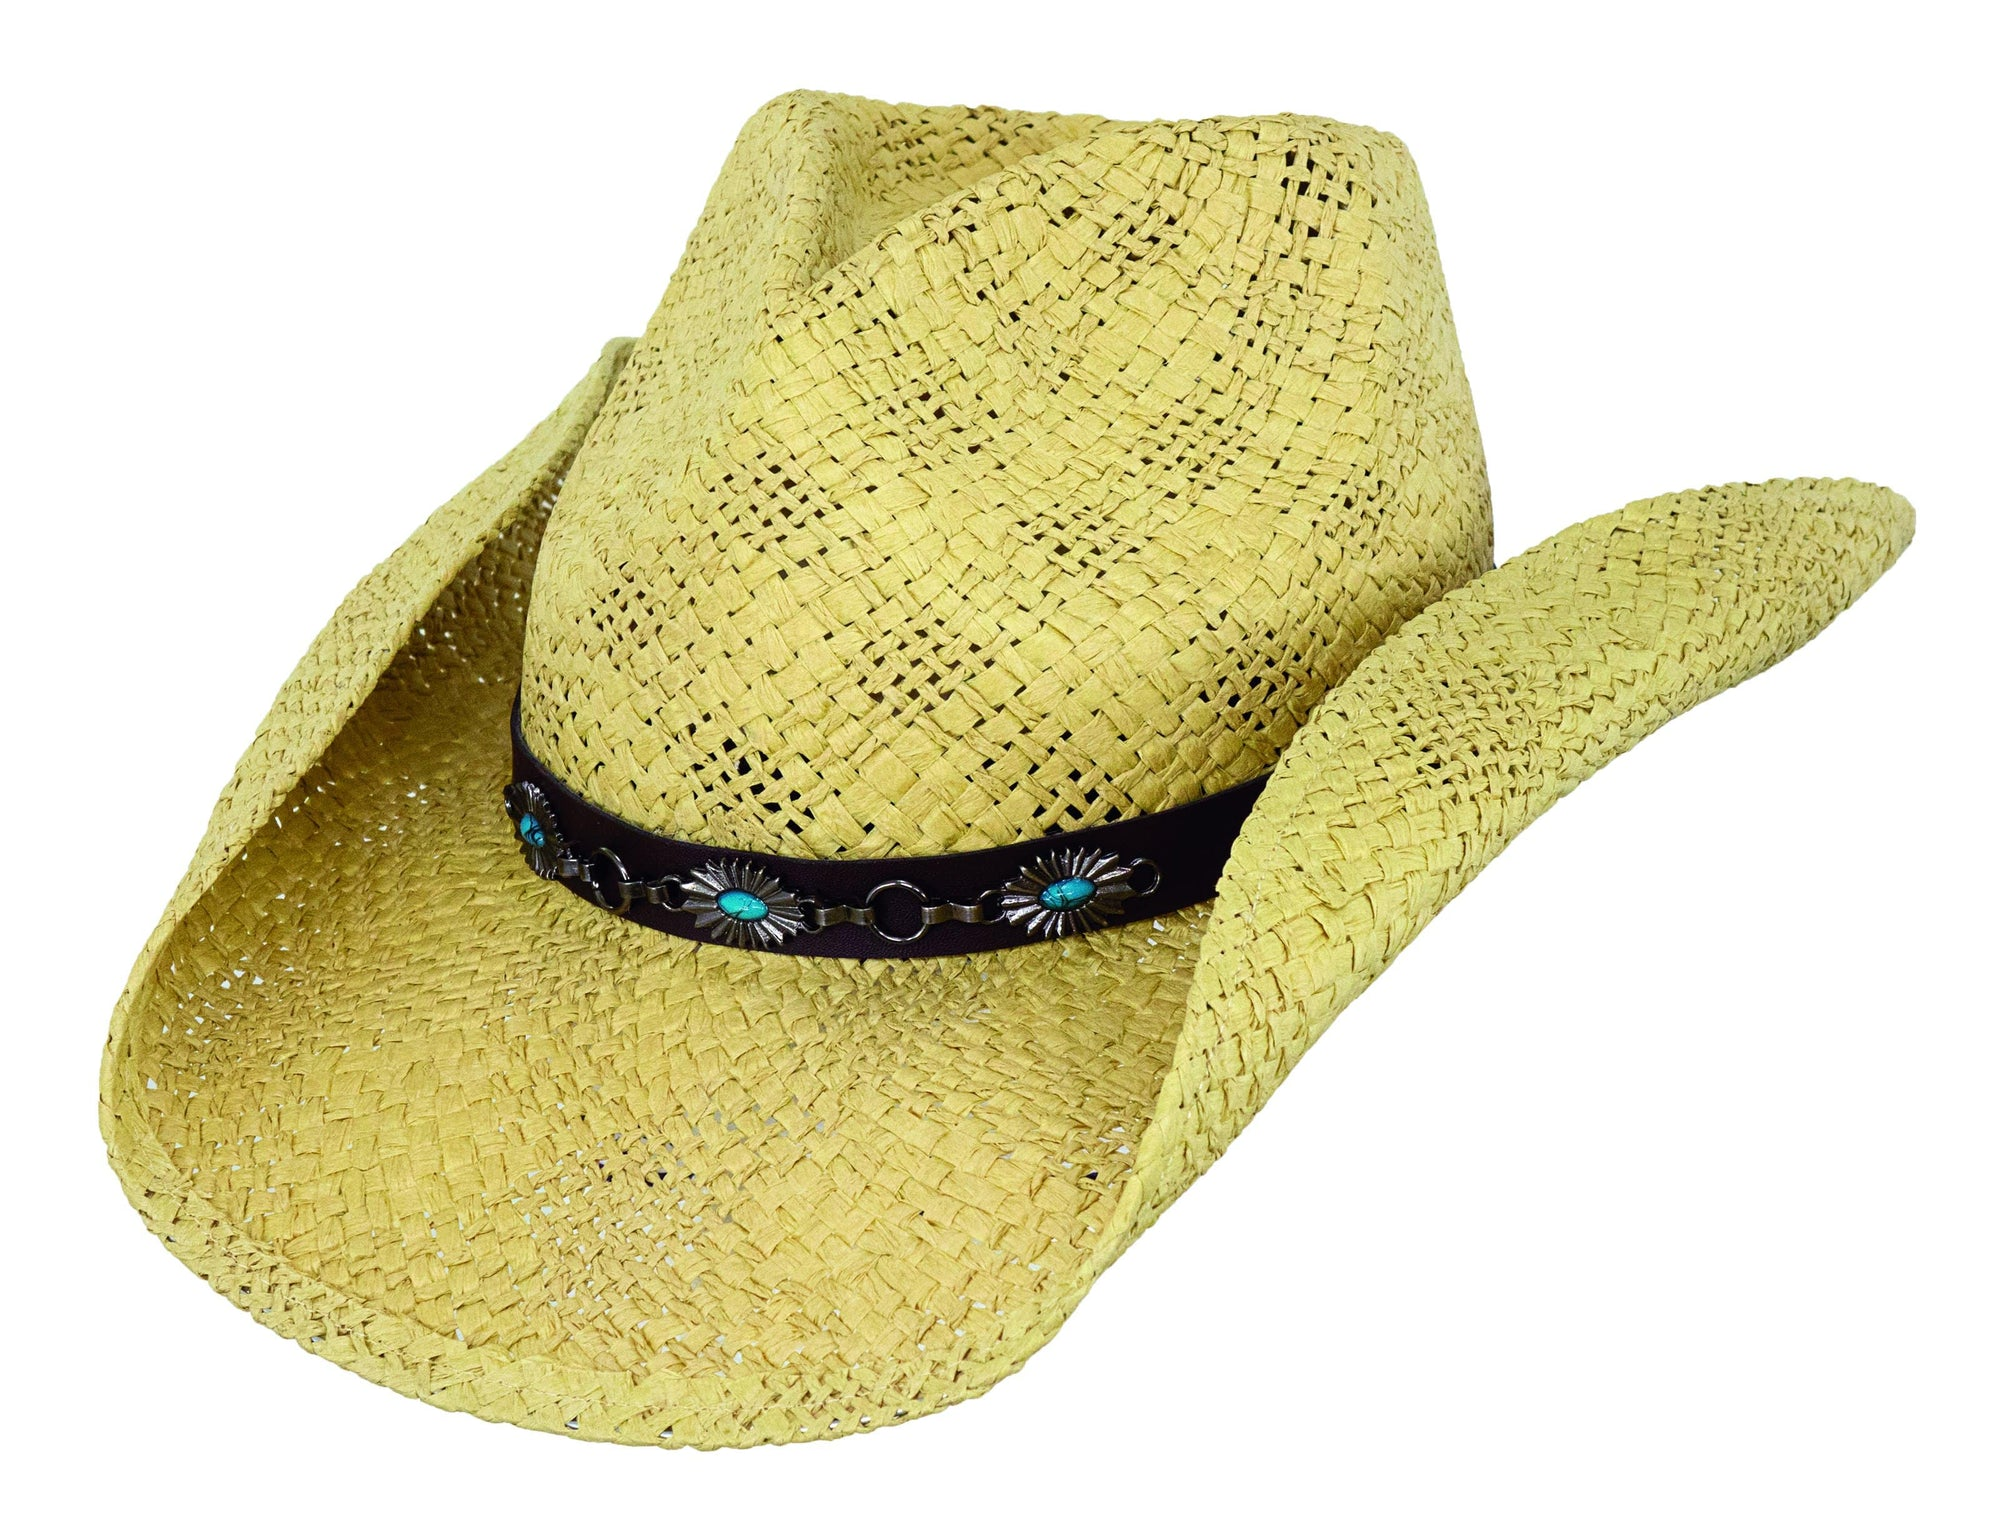 Outback Trading Company Southern Cross Straw Hat NATURAL / SM / MD 15137-NAT-S/M